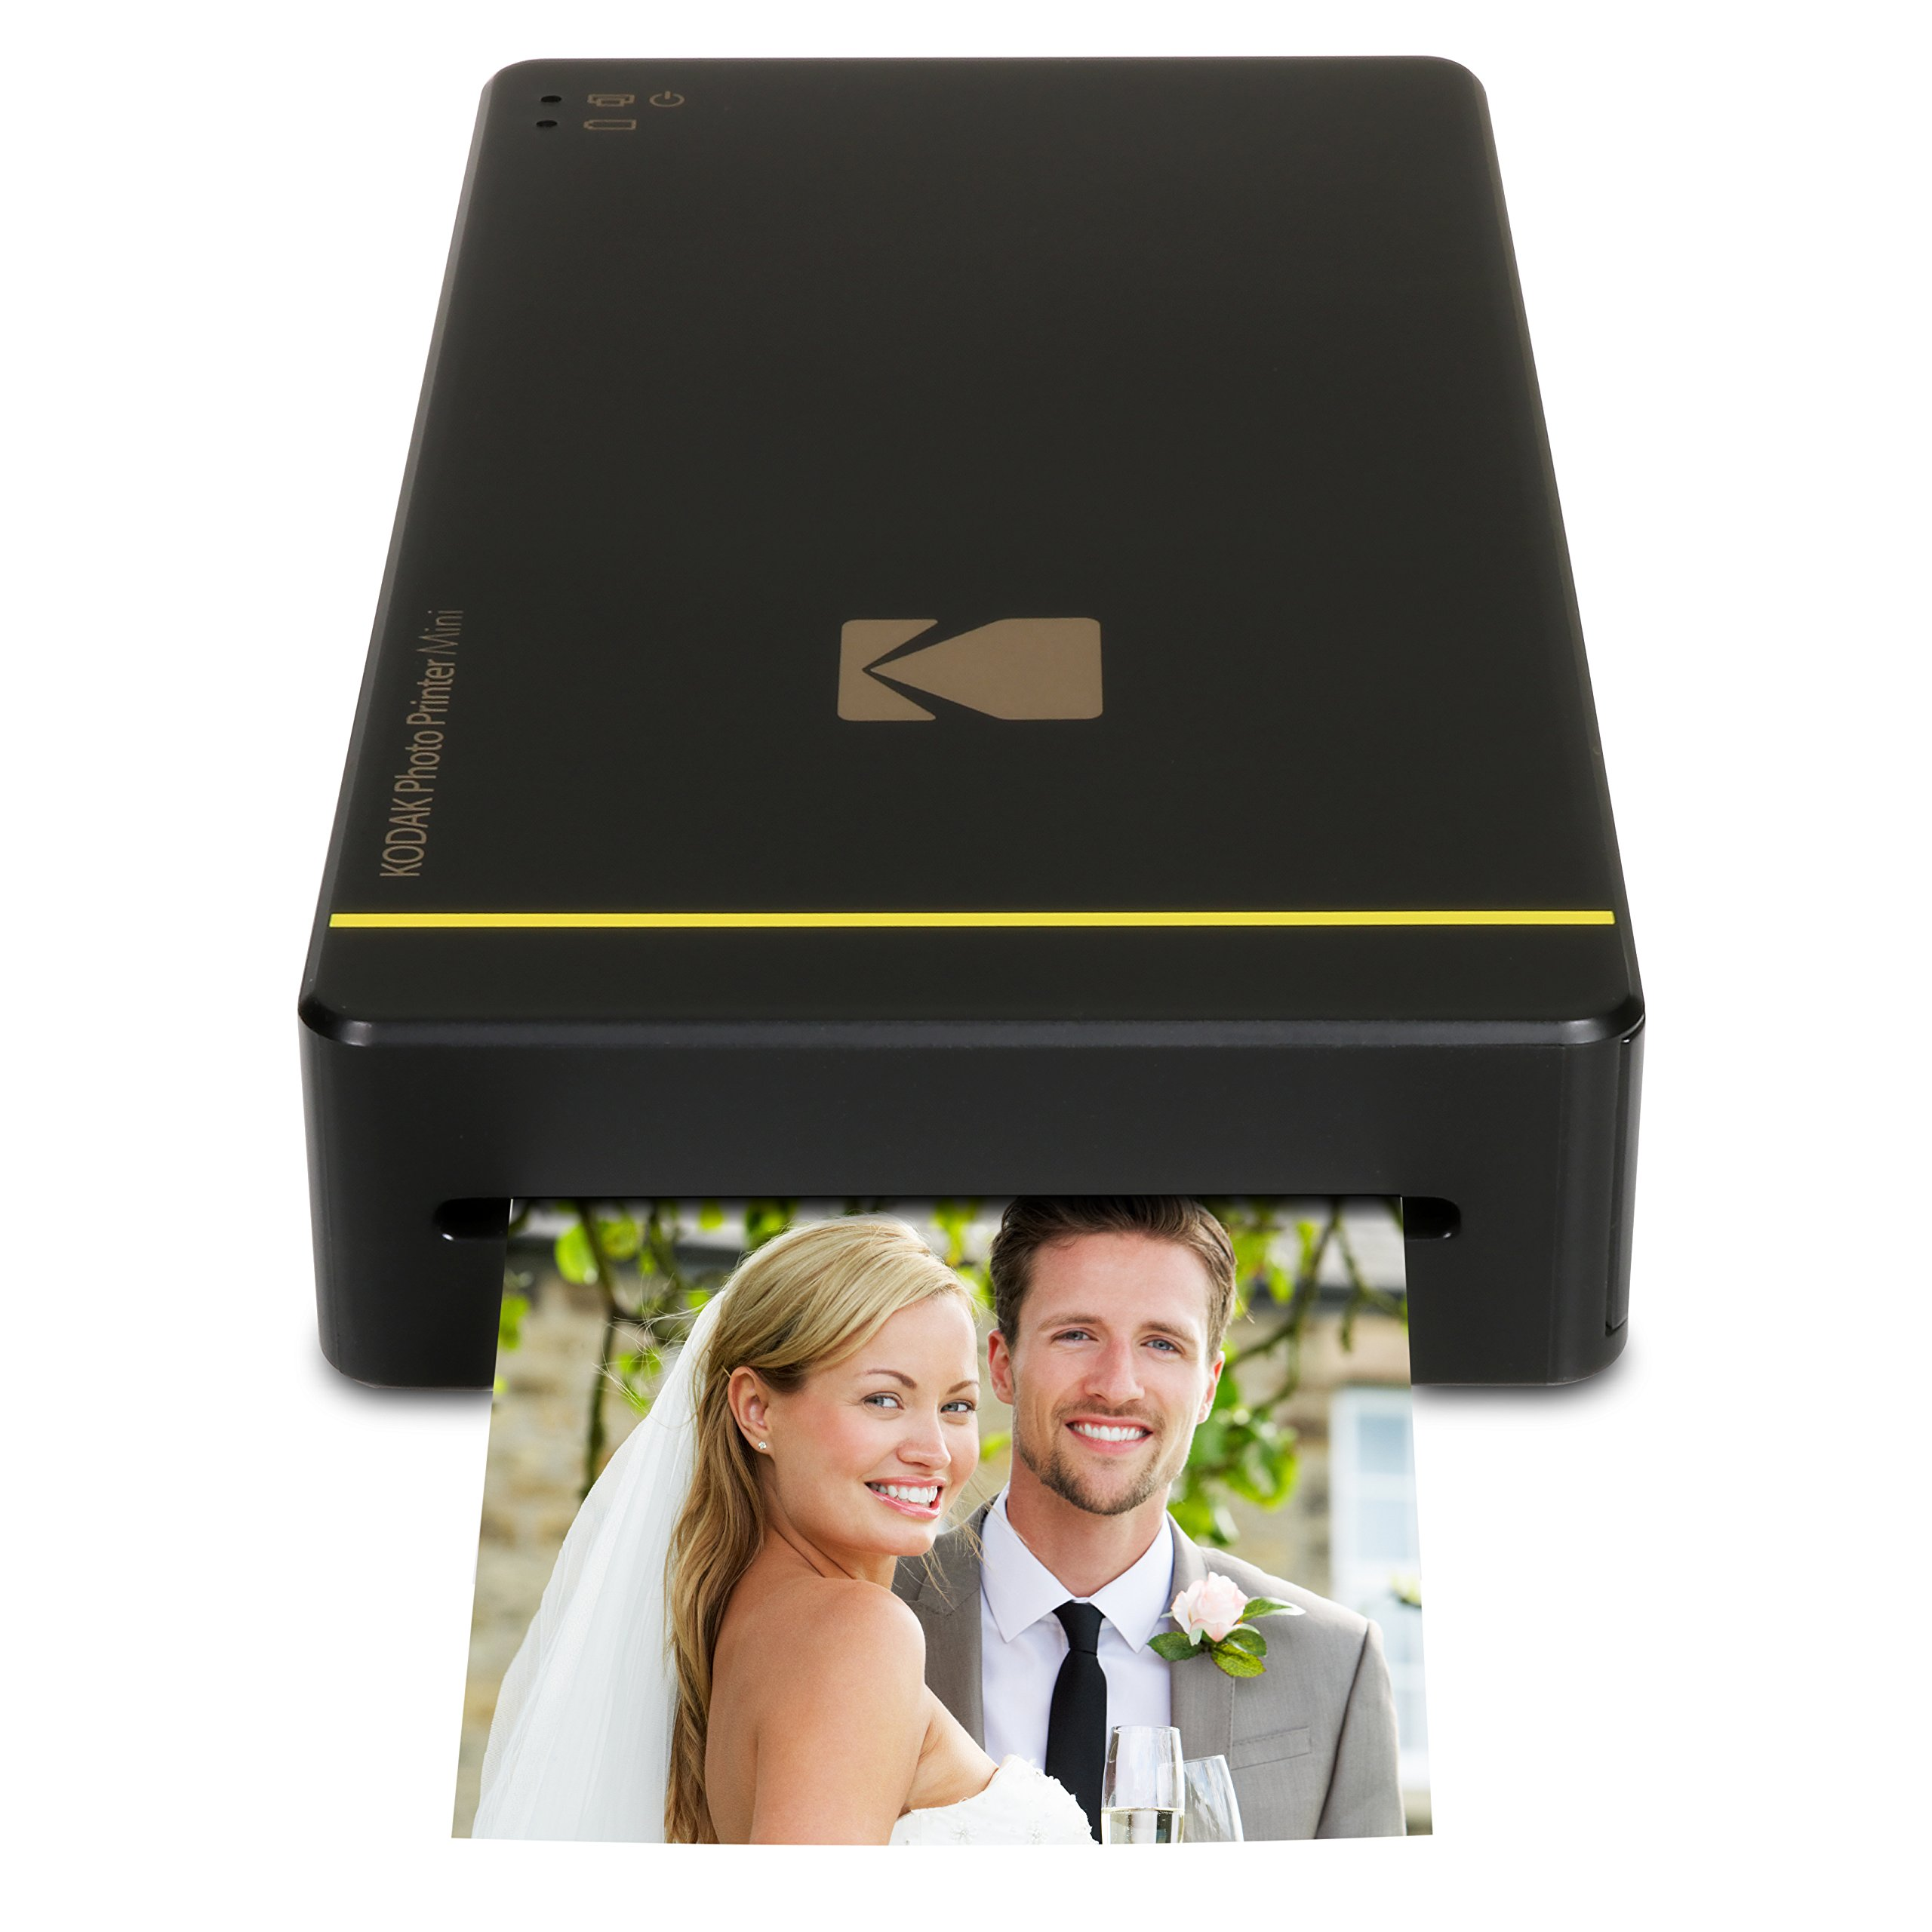 Kodak Mini Portable Mobile Instant Photo Printer - Wi-Fi & NFC Compatible - Wirelessly Prints 2.1 x 3.4'' Images, Advanced DyeSub Printing Technology (Black) Compatible with Android & iOS by KODAK